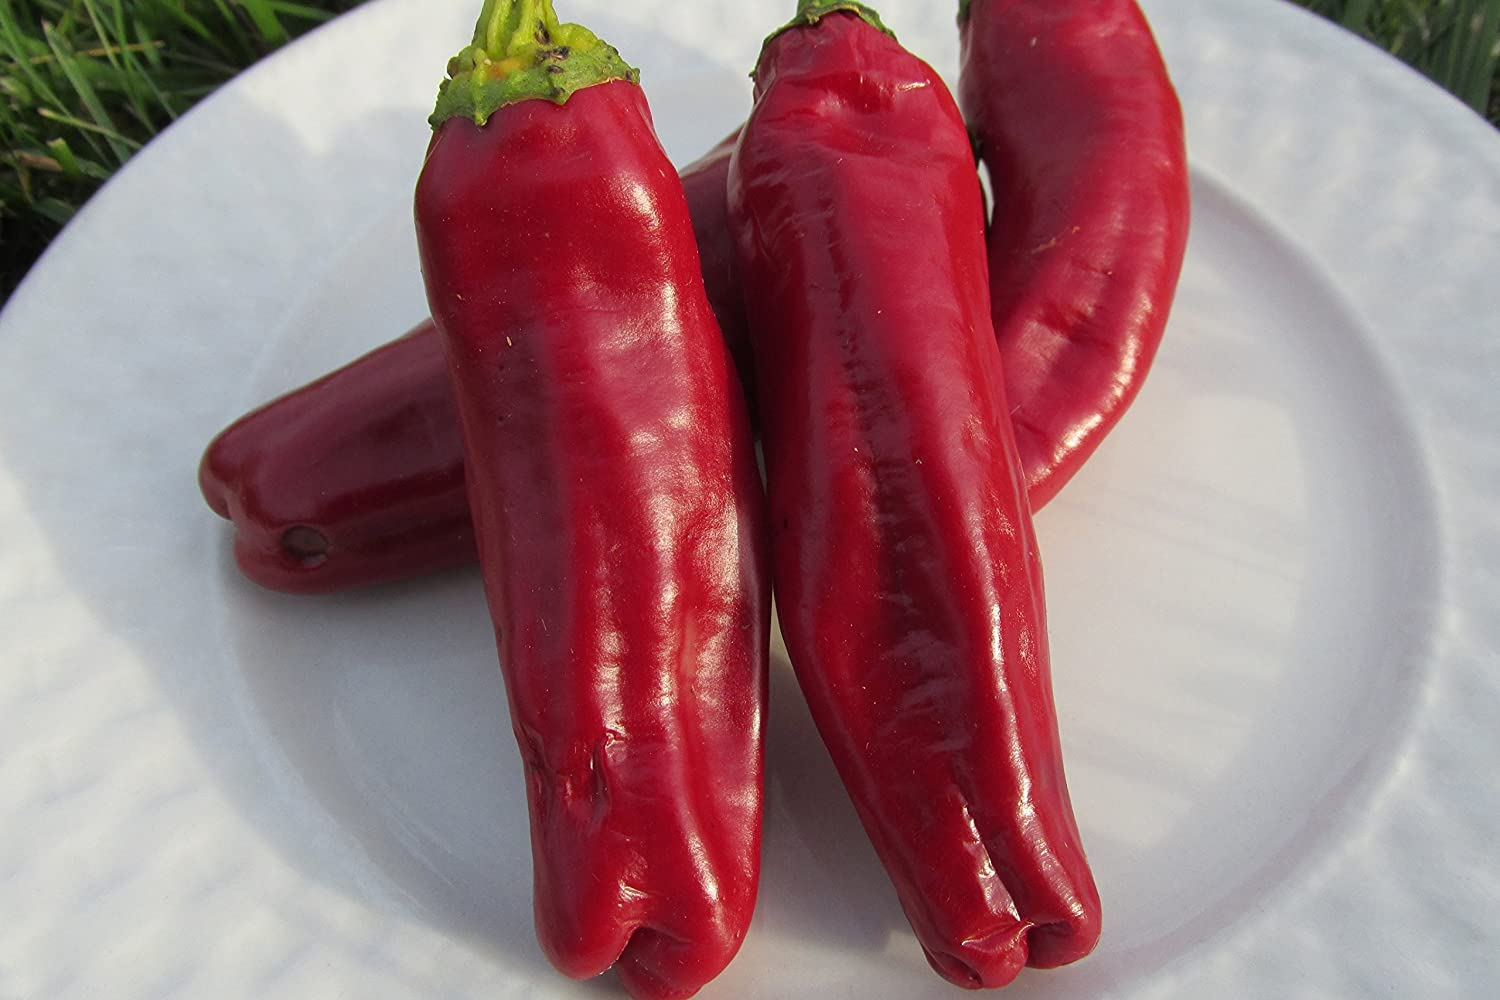 Organic Aleppo Pepper Seeds (Halaby Pepper, pul biber) 20+ Seeds by Ohio Heirloom Seeds